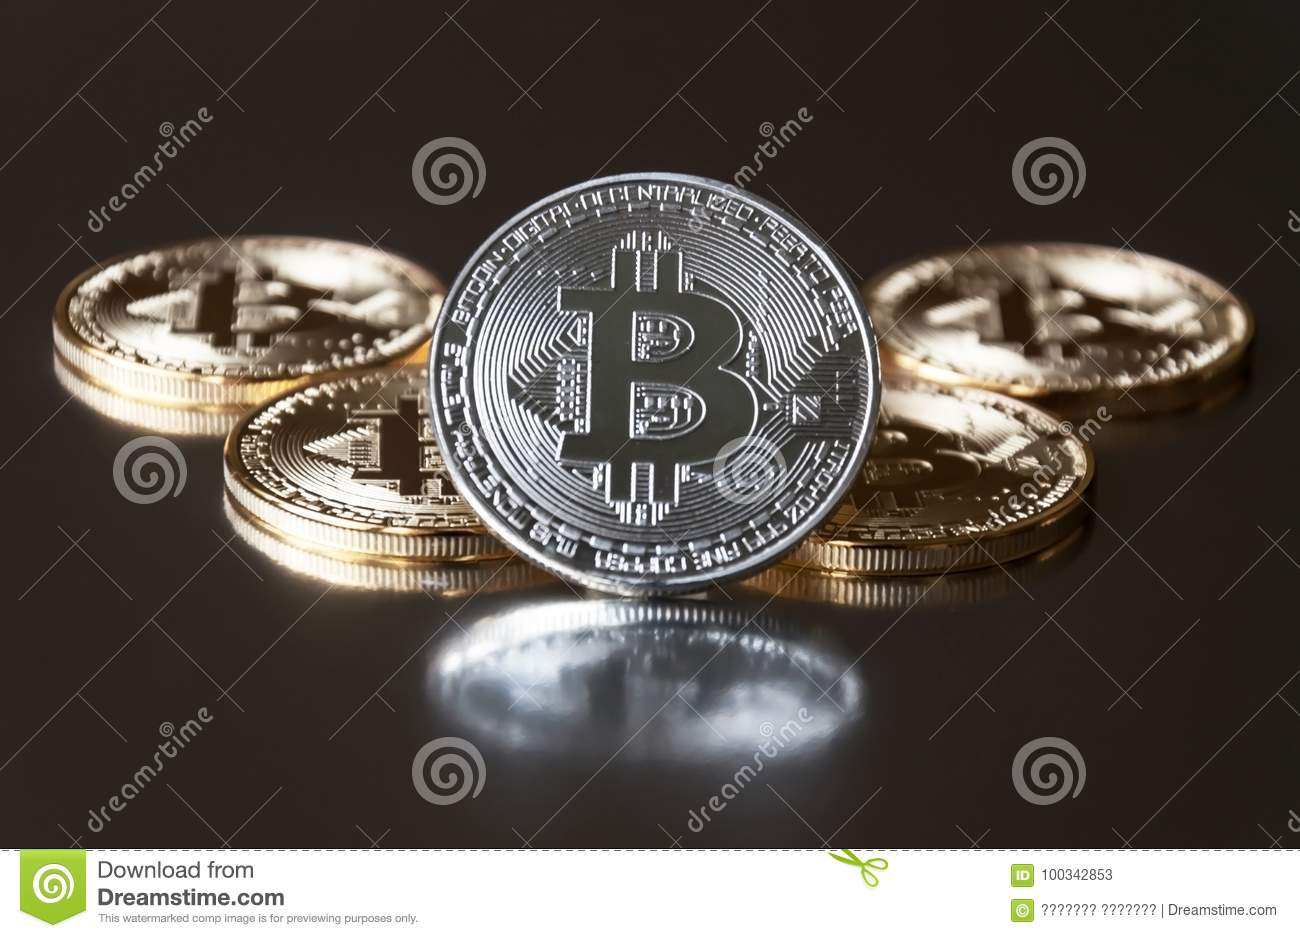 A few gold and silver coins bitcoin lie or stay on edge on a dark background. The concept of crypto currency.